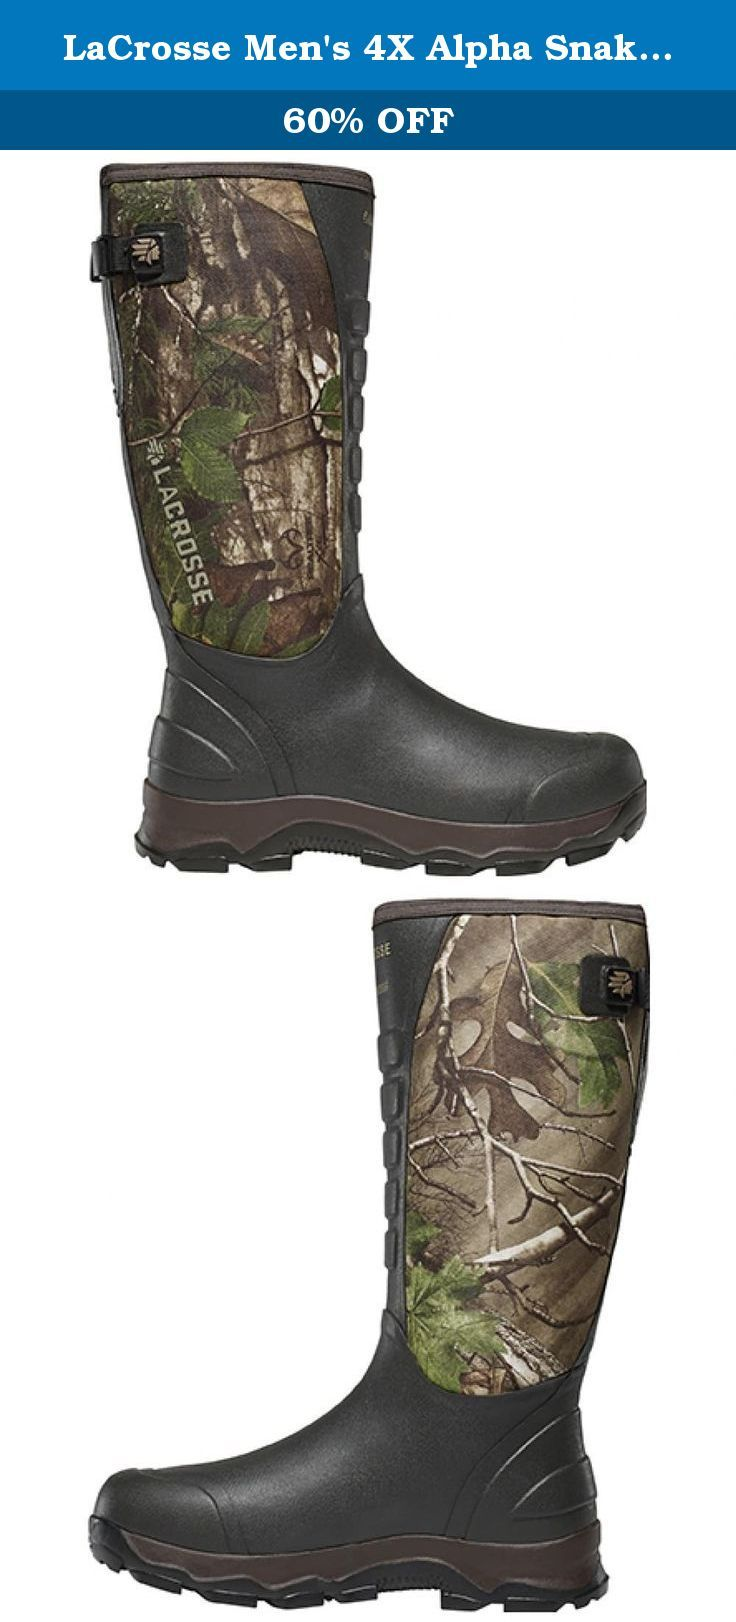 LaCrosse Men's 4X Alpha Snake Hunting Boot, Real Tree Extra Green, 11 M US